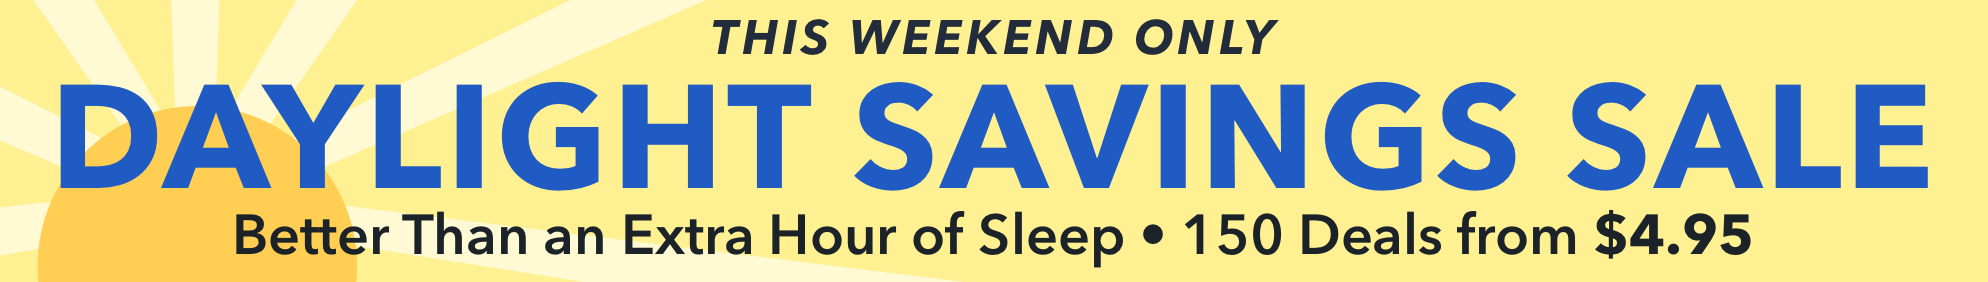 The Daylight Savings Sale 2019